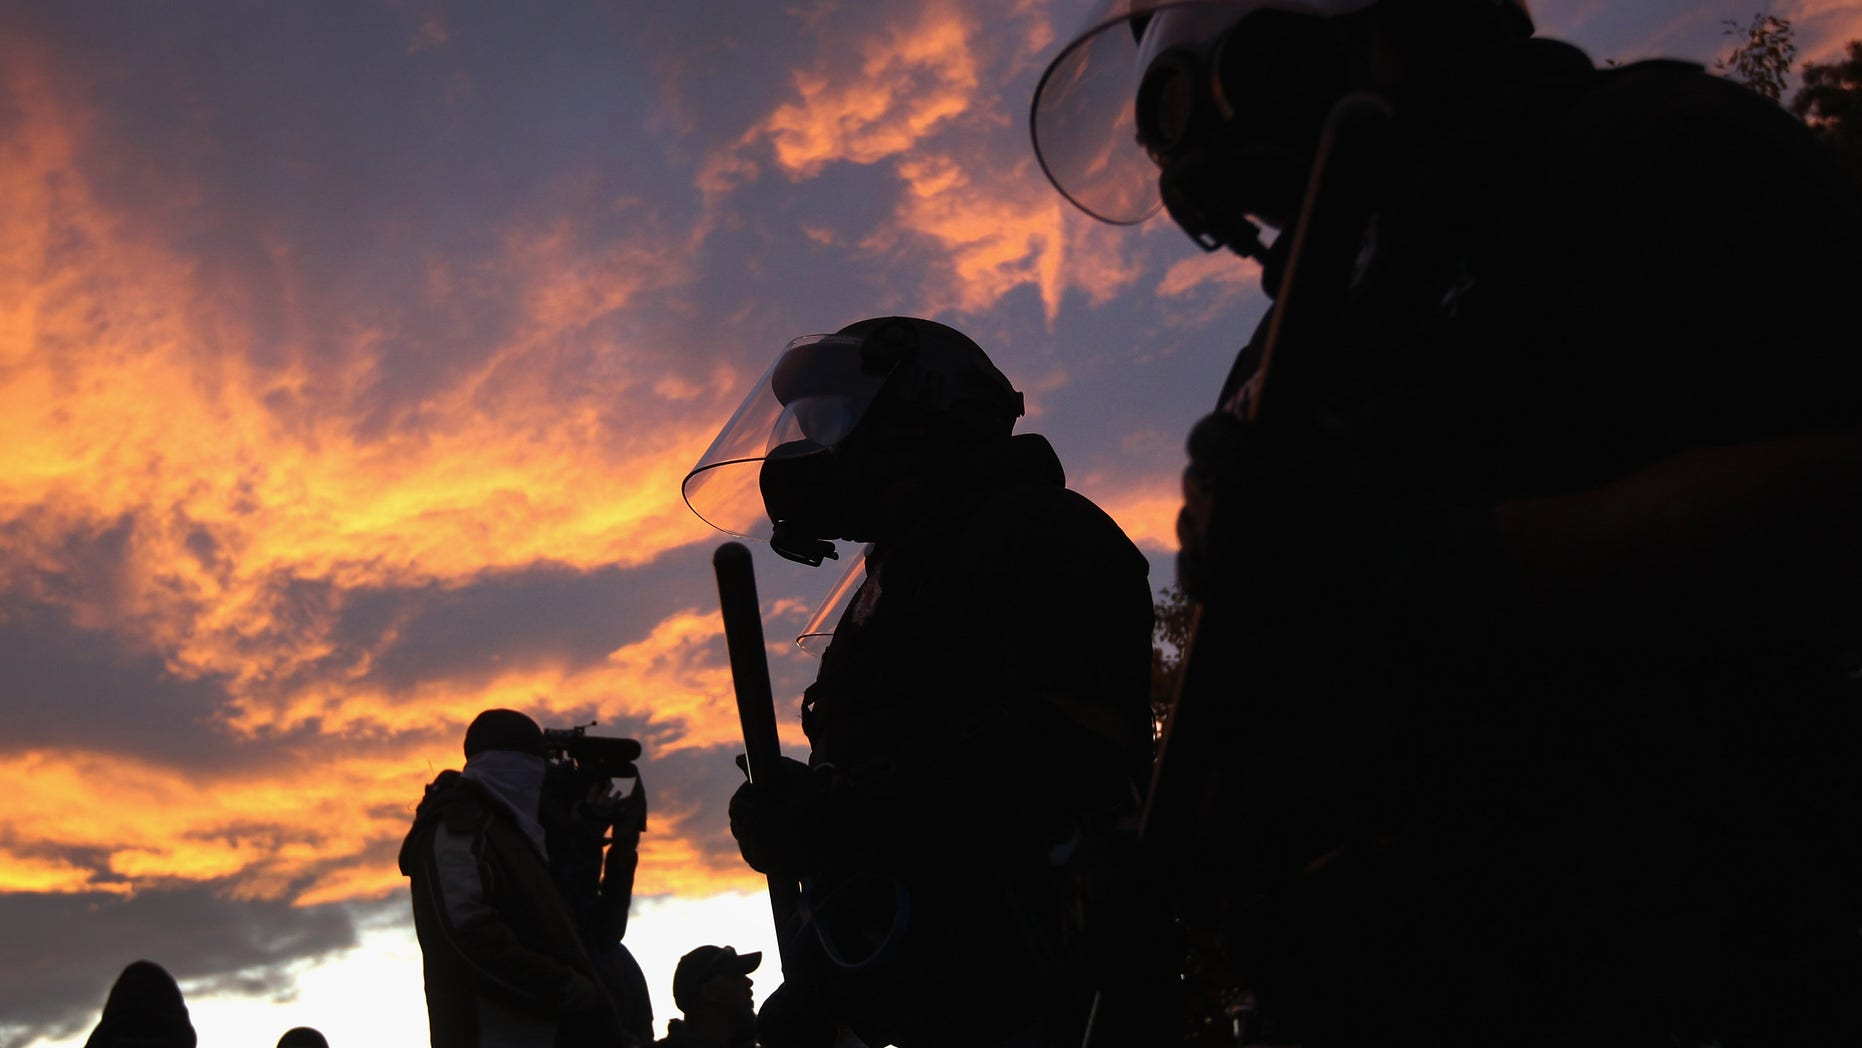 """DENVER, CO - OCTOBER 29:  Riot police face off with demonstrators at the """"Occupy Denver"""" camp on October 29, 2011 in Denver, Colorado. Following a march by protesters, police moved in on their encampment to tear down recently erected tents. They arrested numerous protesters, pepper-sprayed others and others reportedly fired rubber bullets at the crowd during the confrontation.  (Photo by John Moore/Getty Images)"""